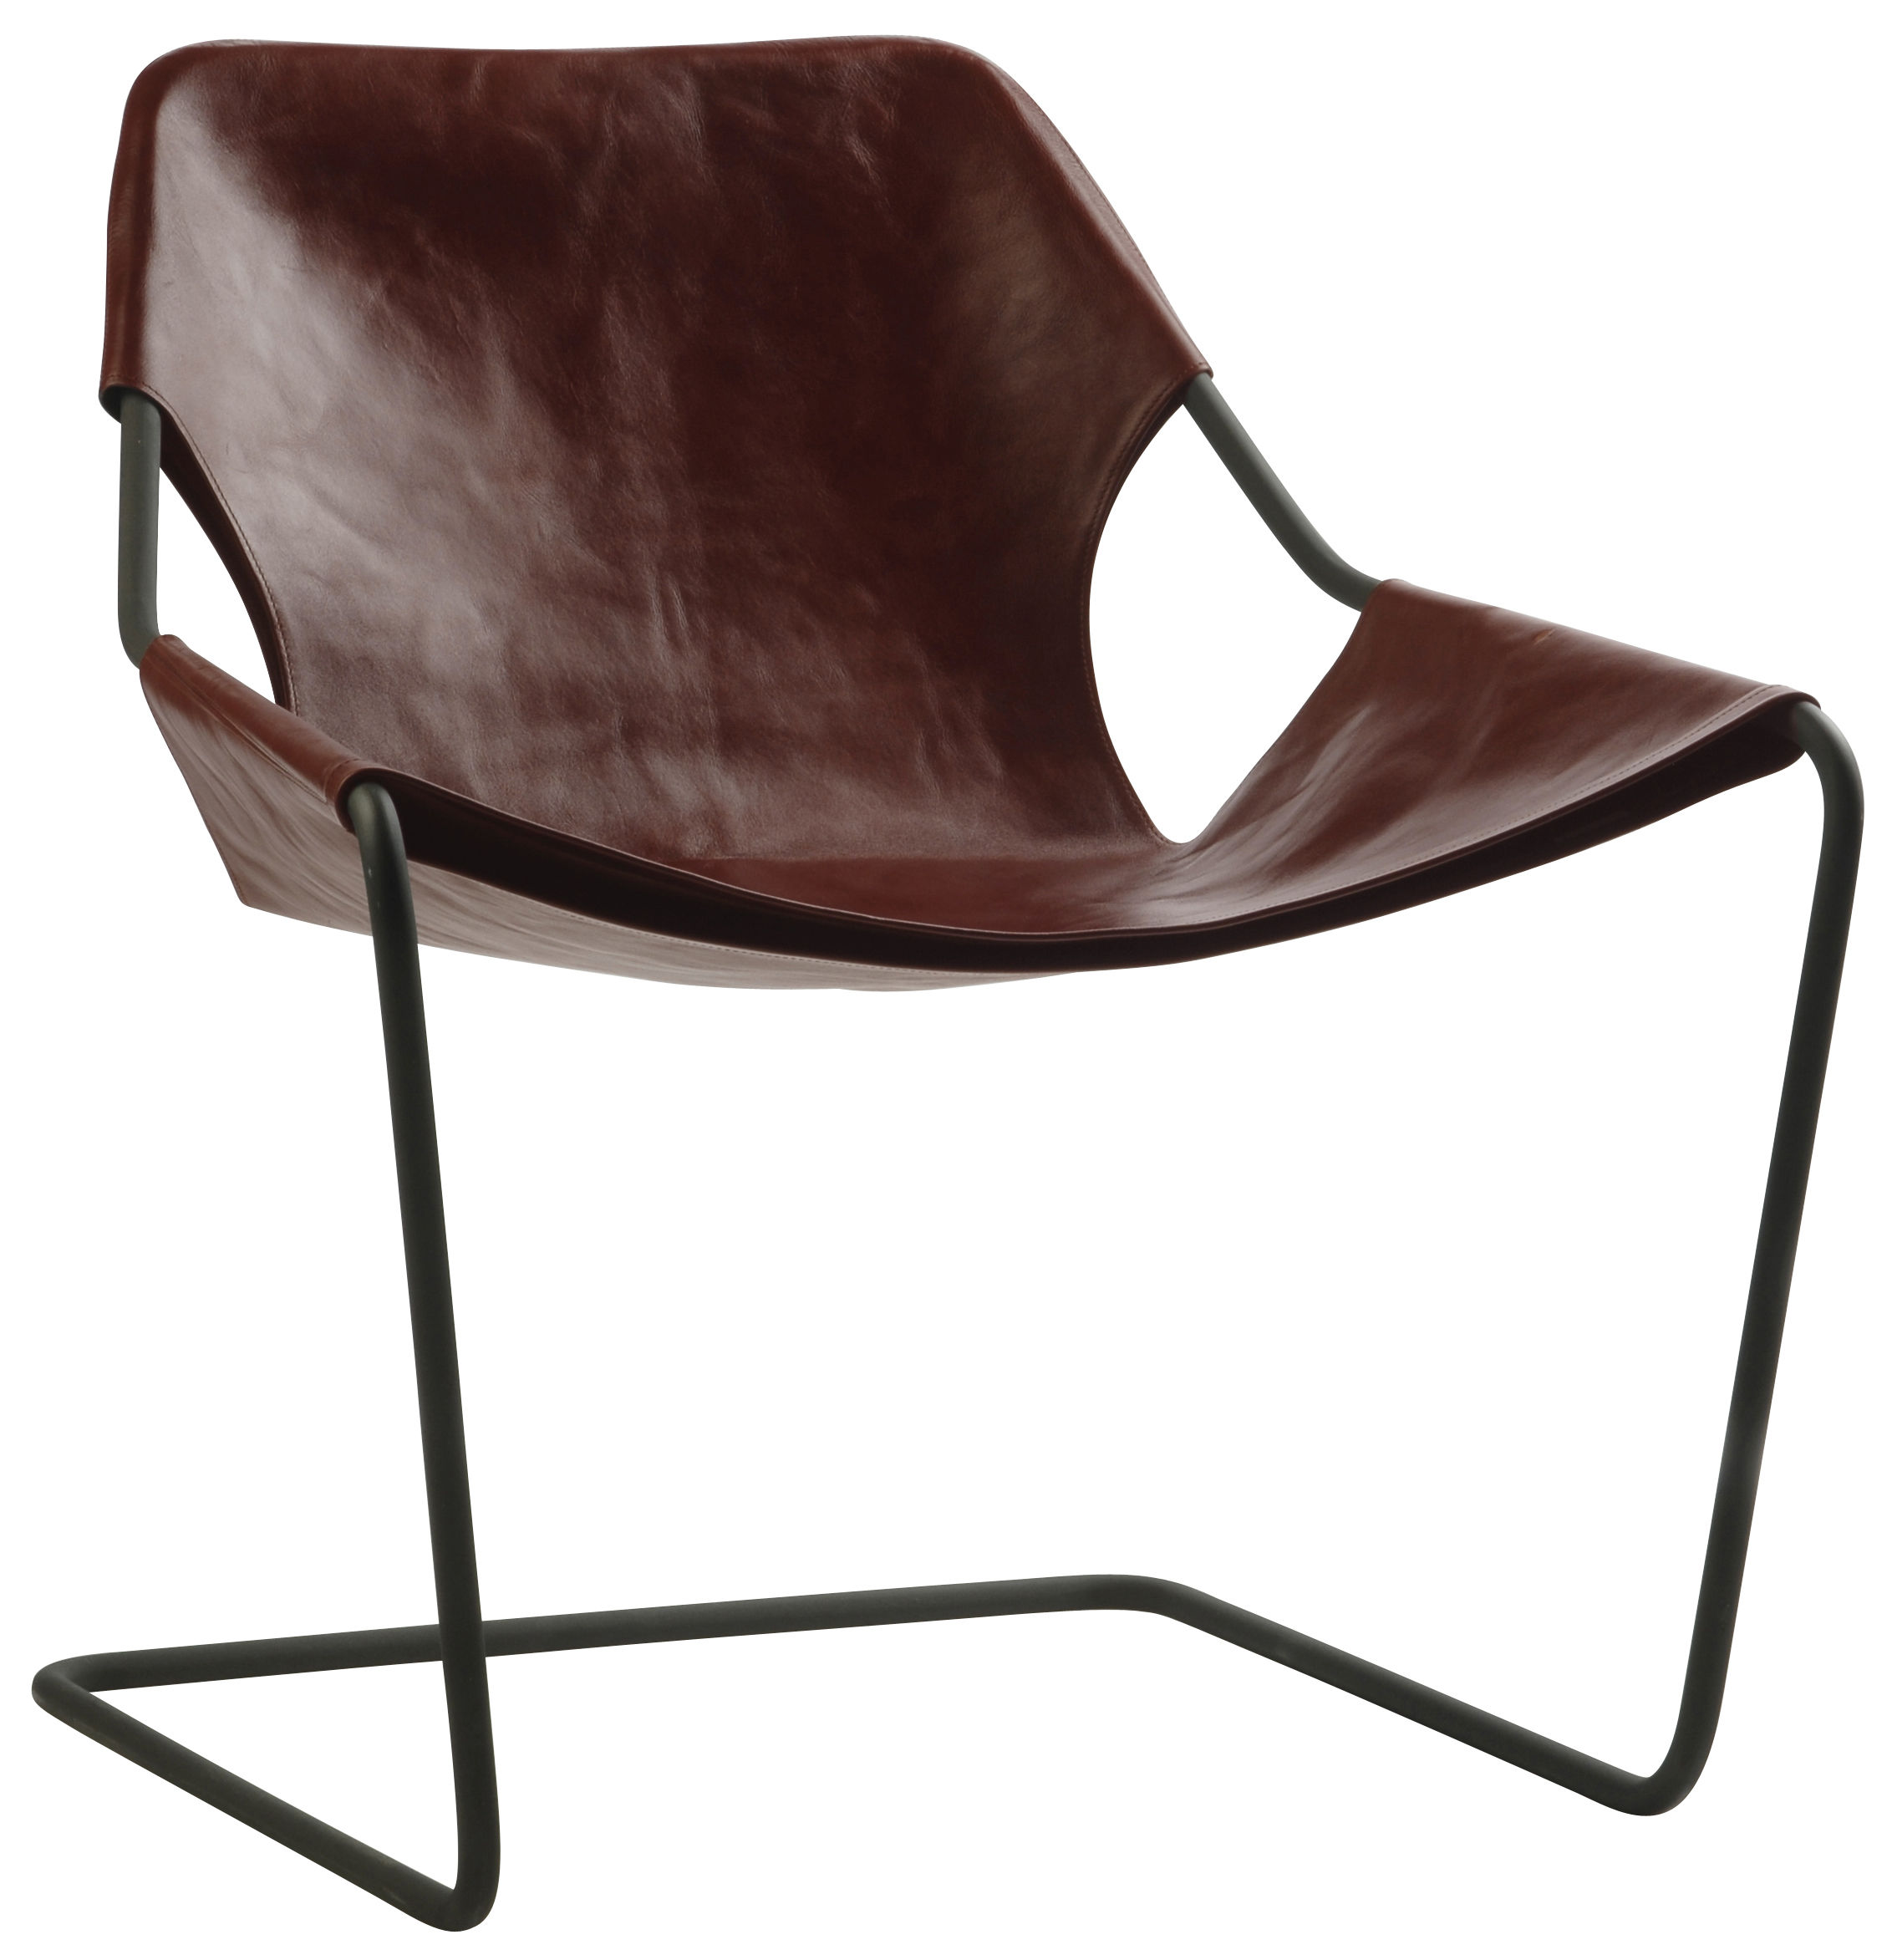 Furniture - Armchairs - Paulistano Armchair - Carbon version by Objekto - Cognac - Leather